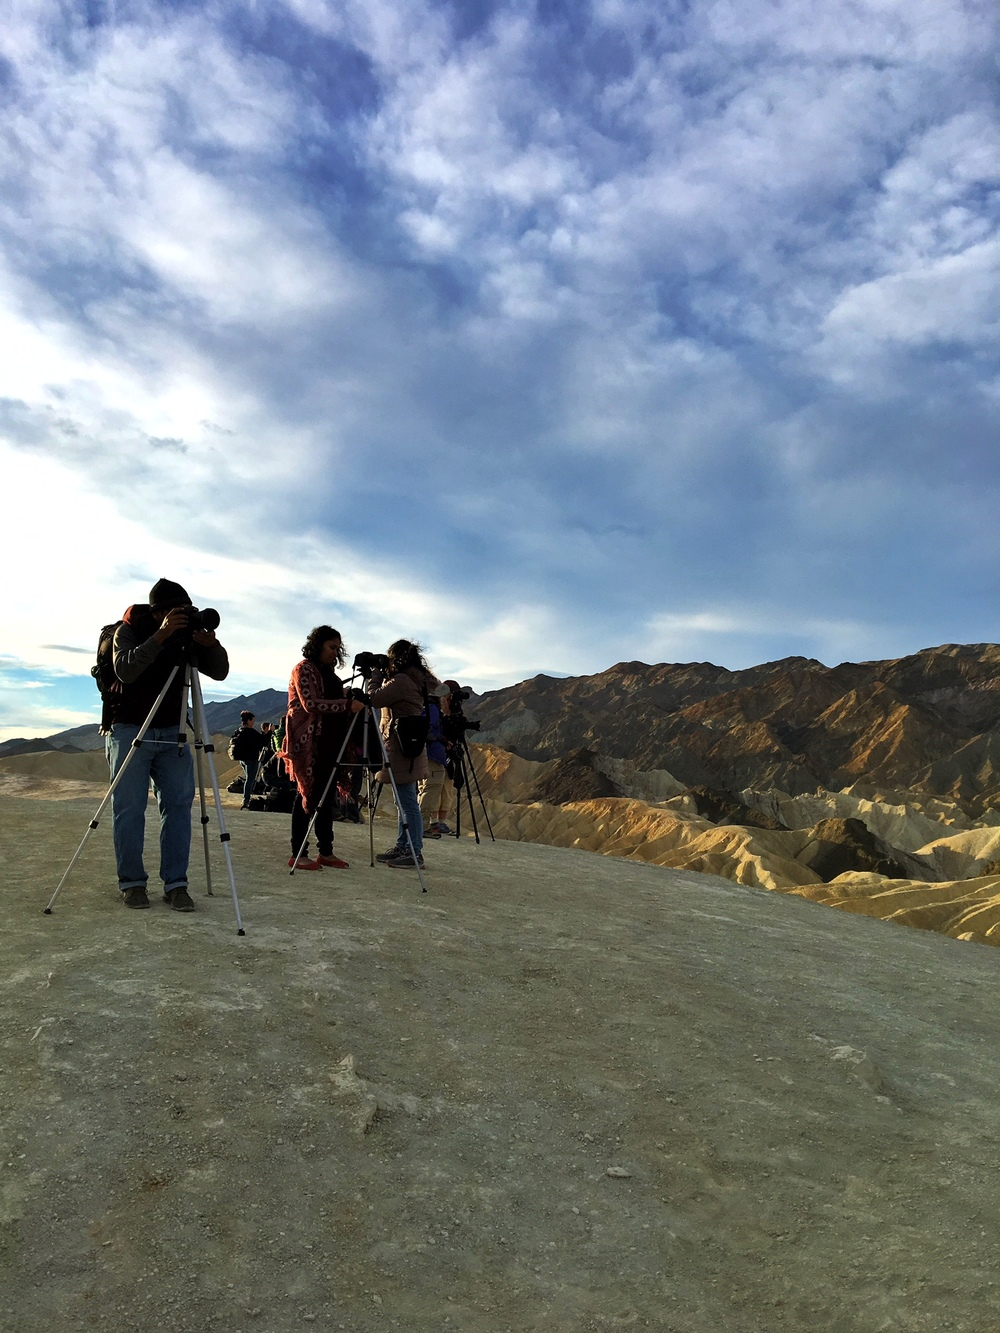 Sunrise photographers belly up at Zabriskie Point in Death Valley, one of the most popular sunrise spots in the park.